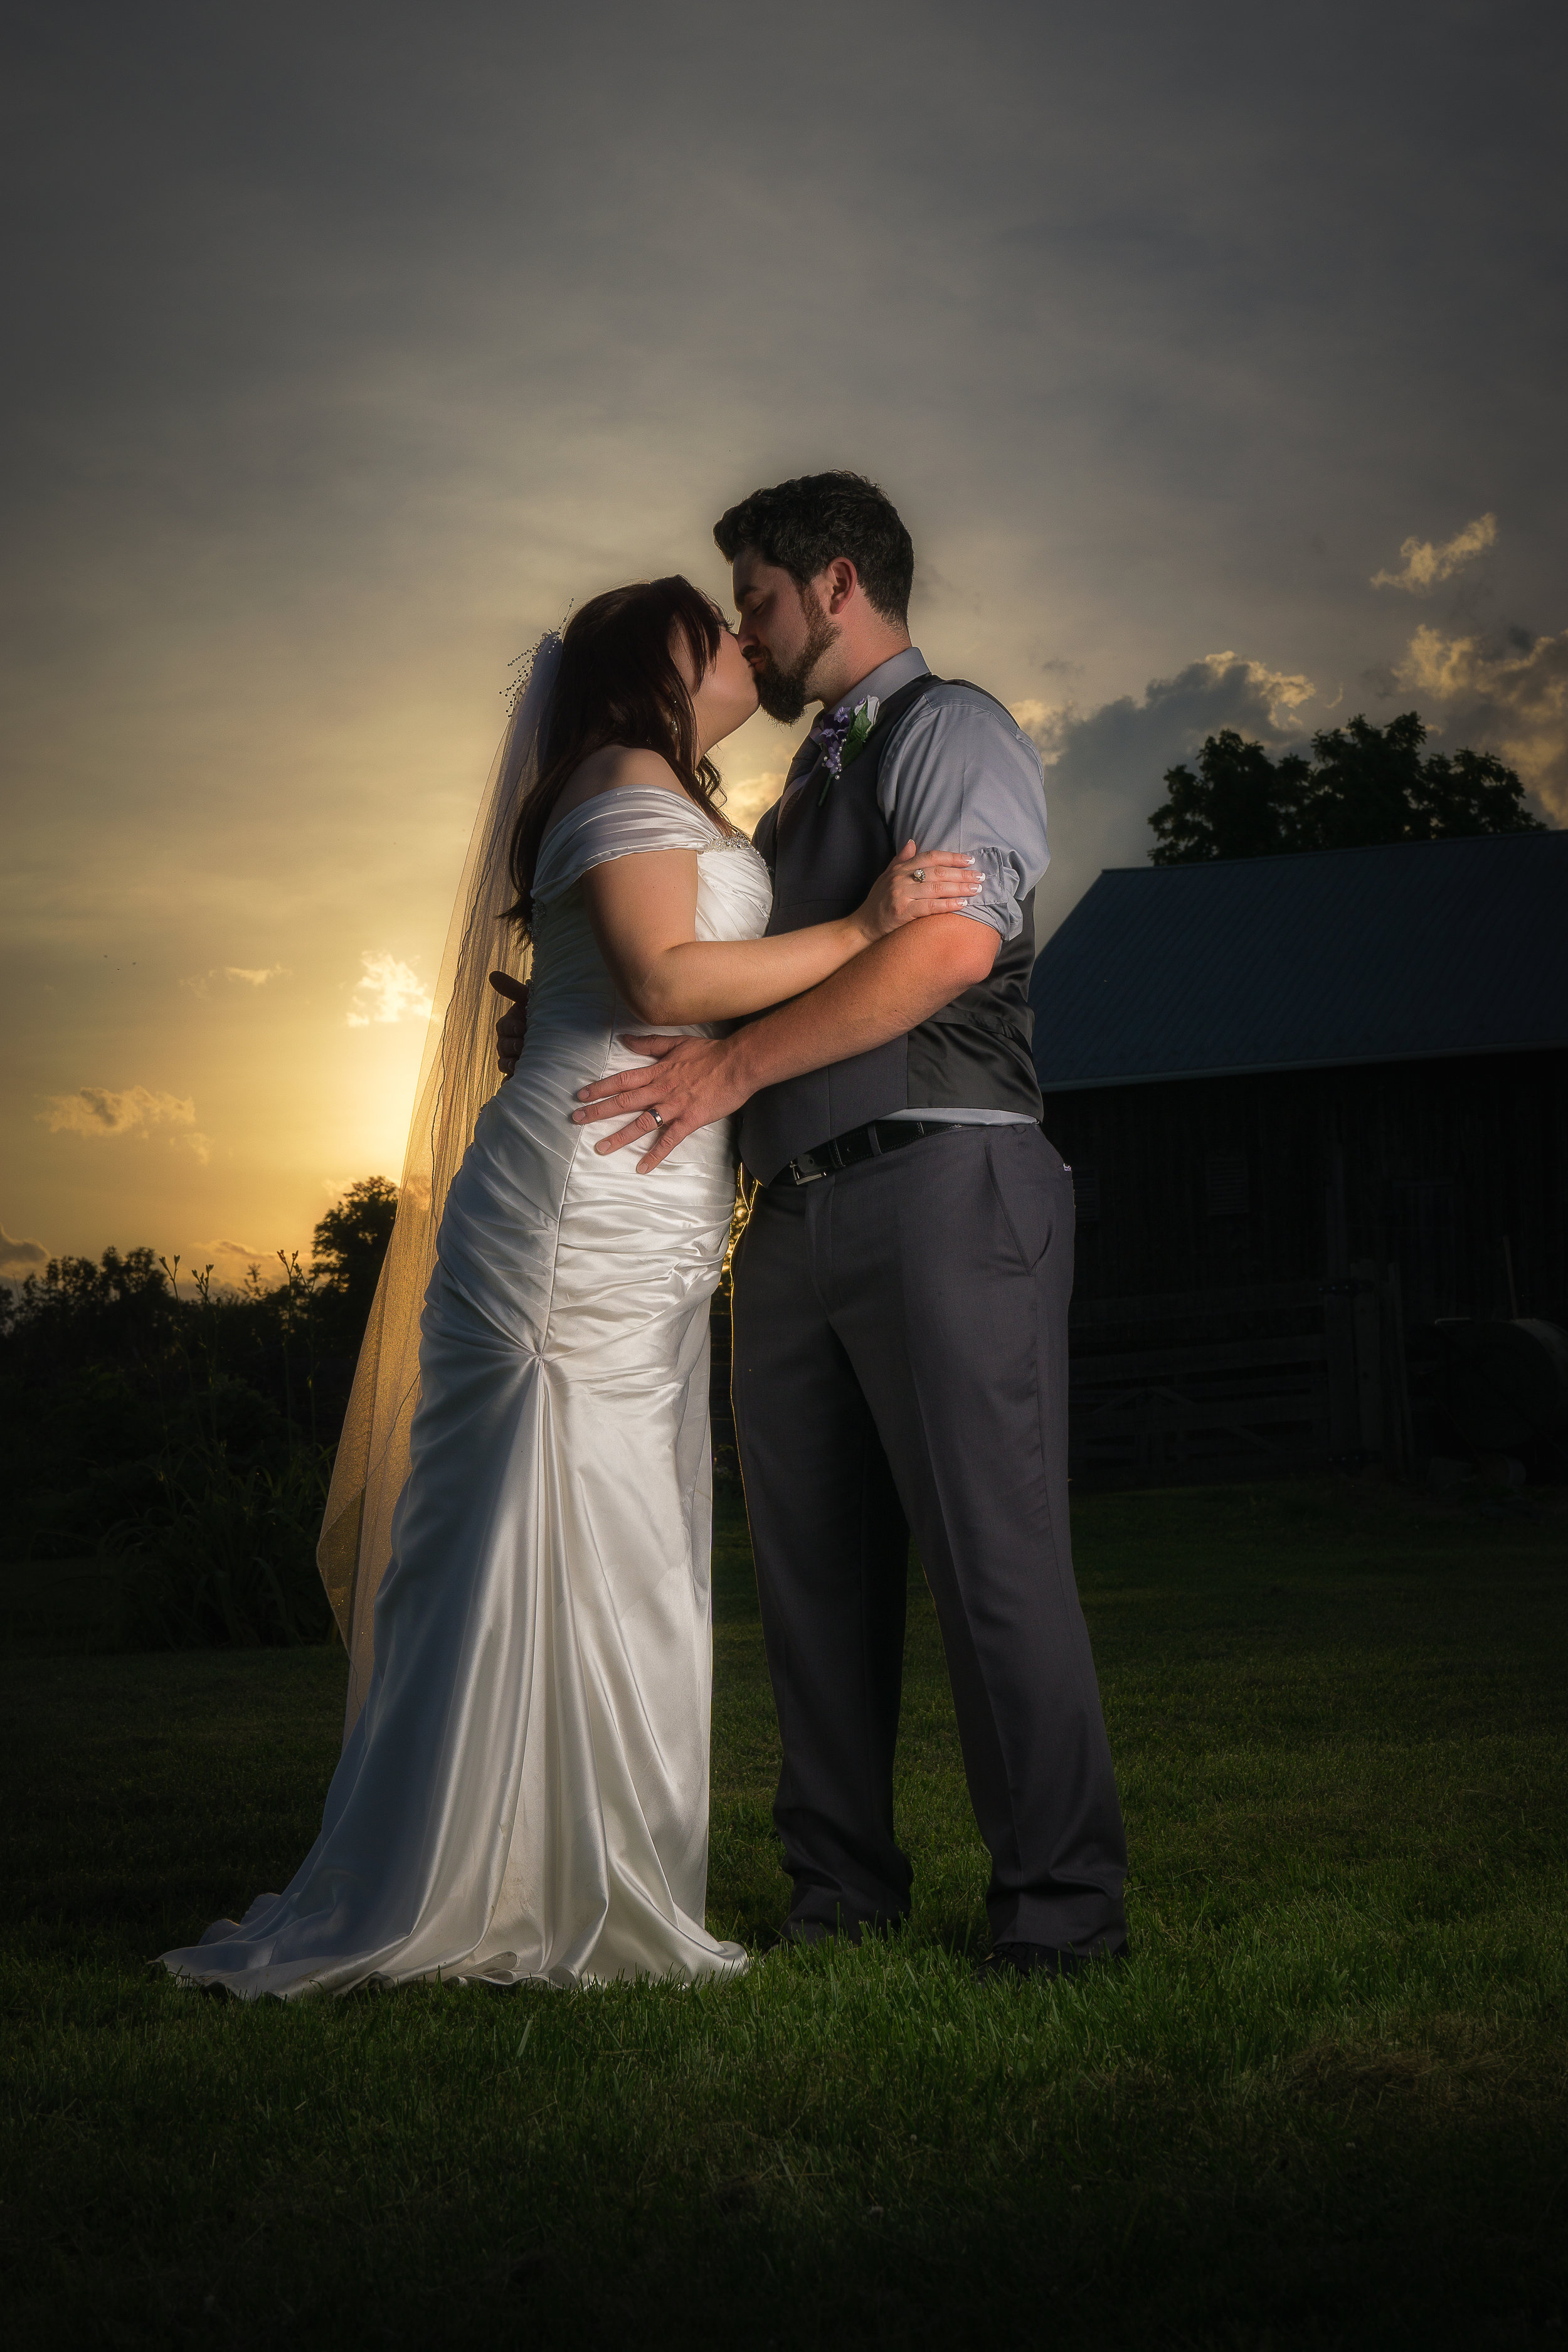 sunset wedding photo gettysburg pa